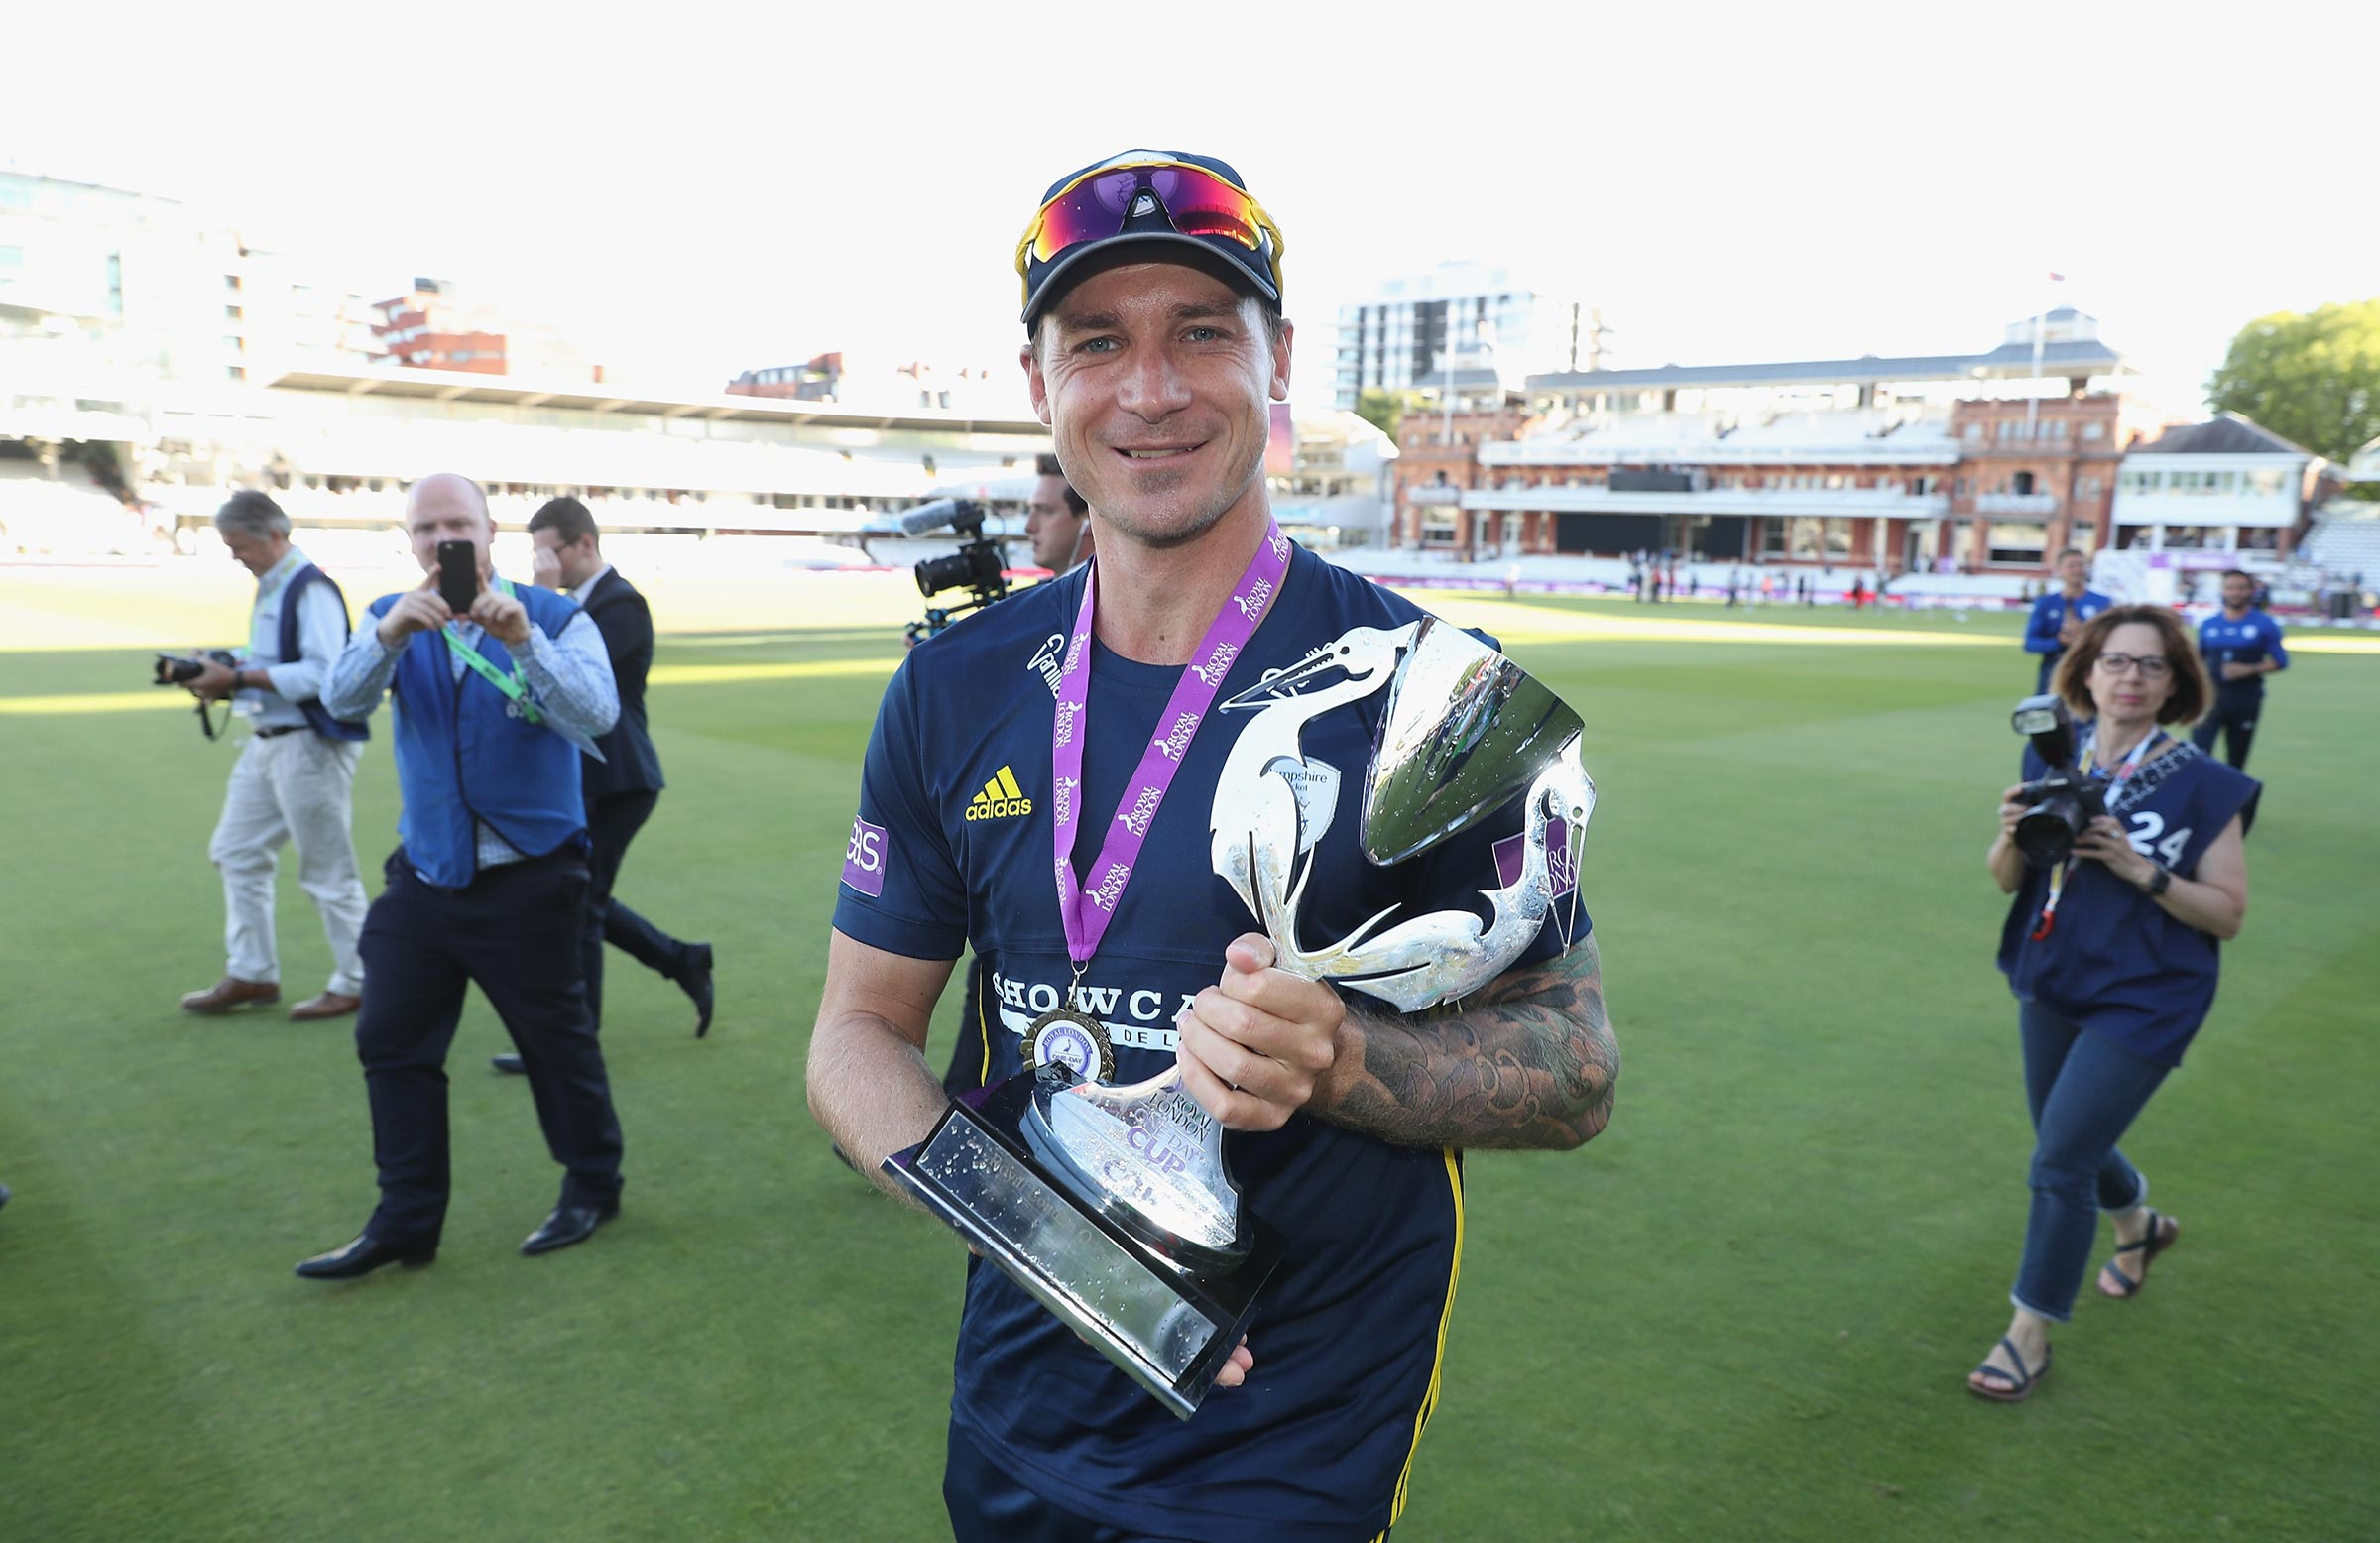 Steyn with the silverware // Getty